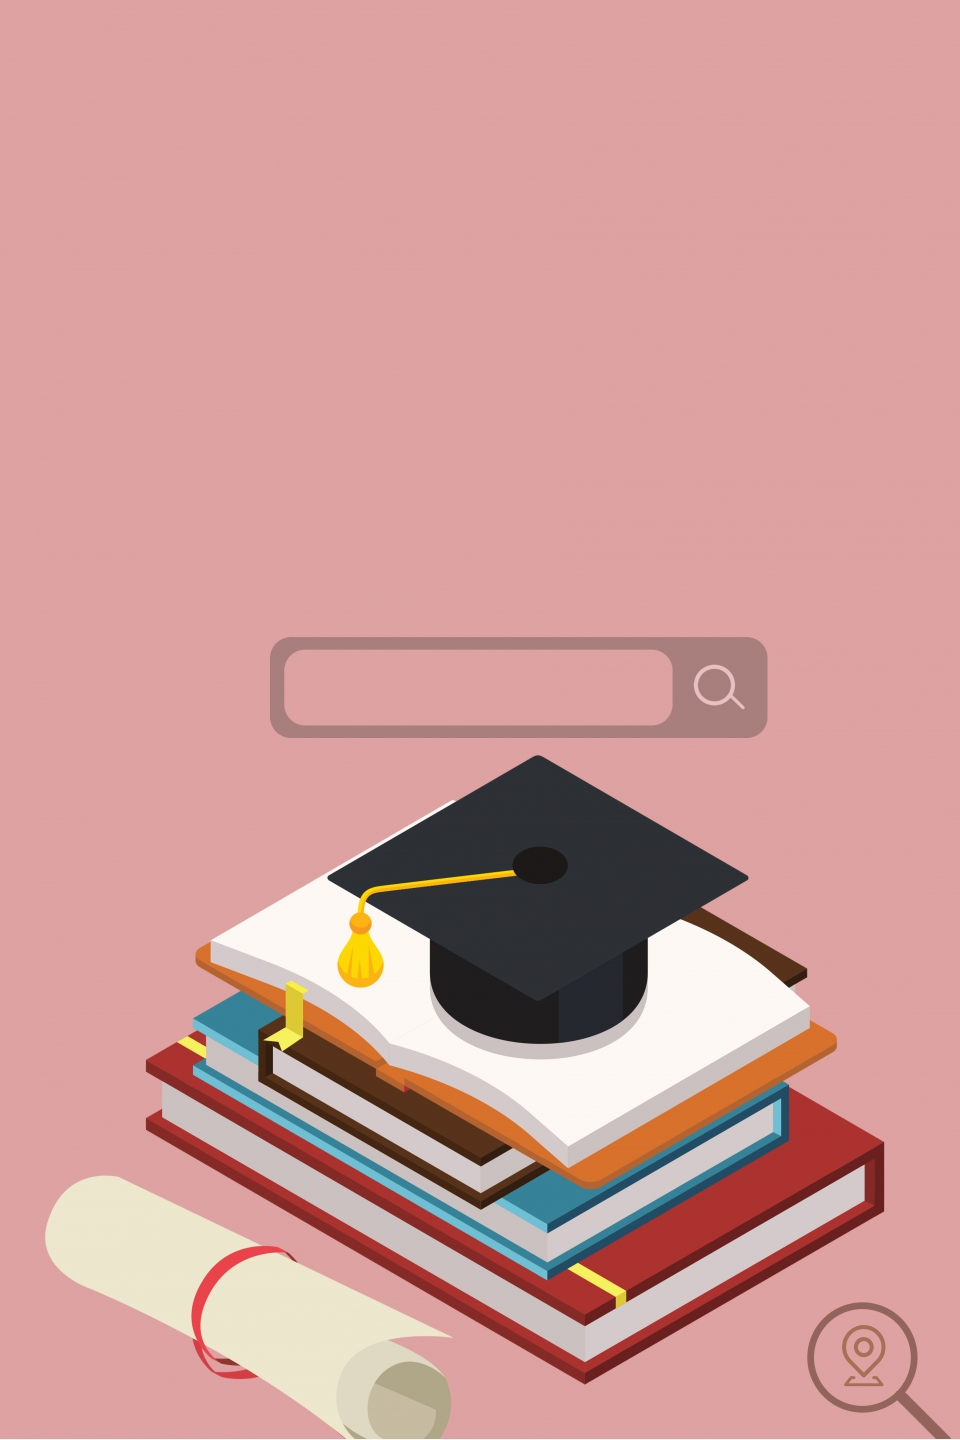 Thesis Background Photos, Vectors And PSD Files For Free Download | Pngtree